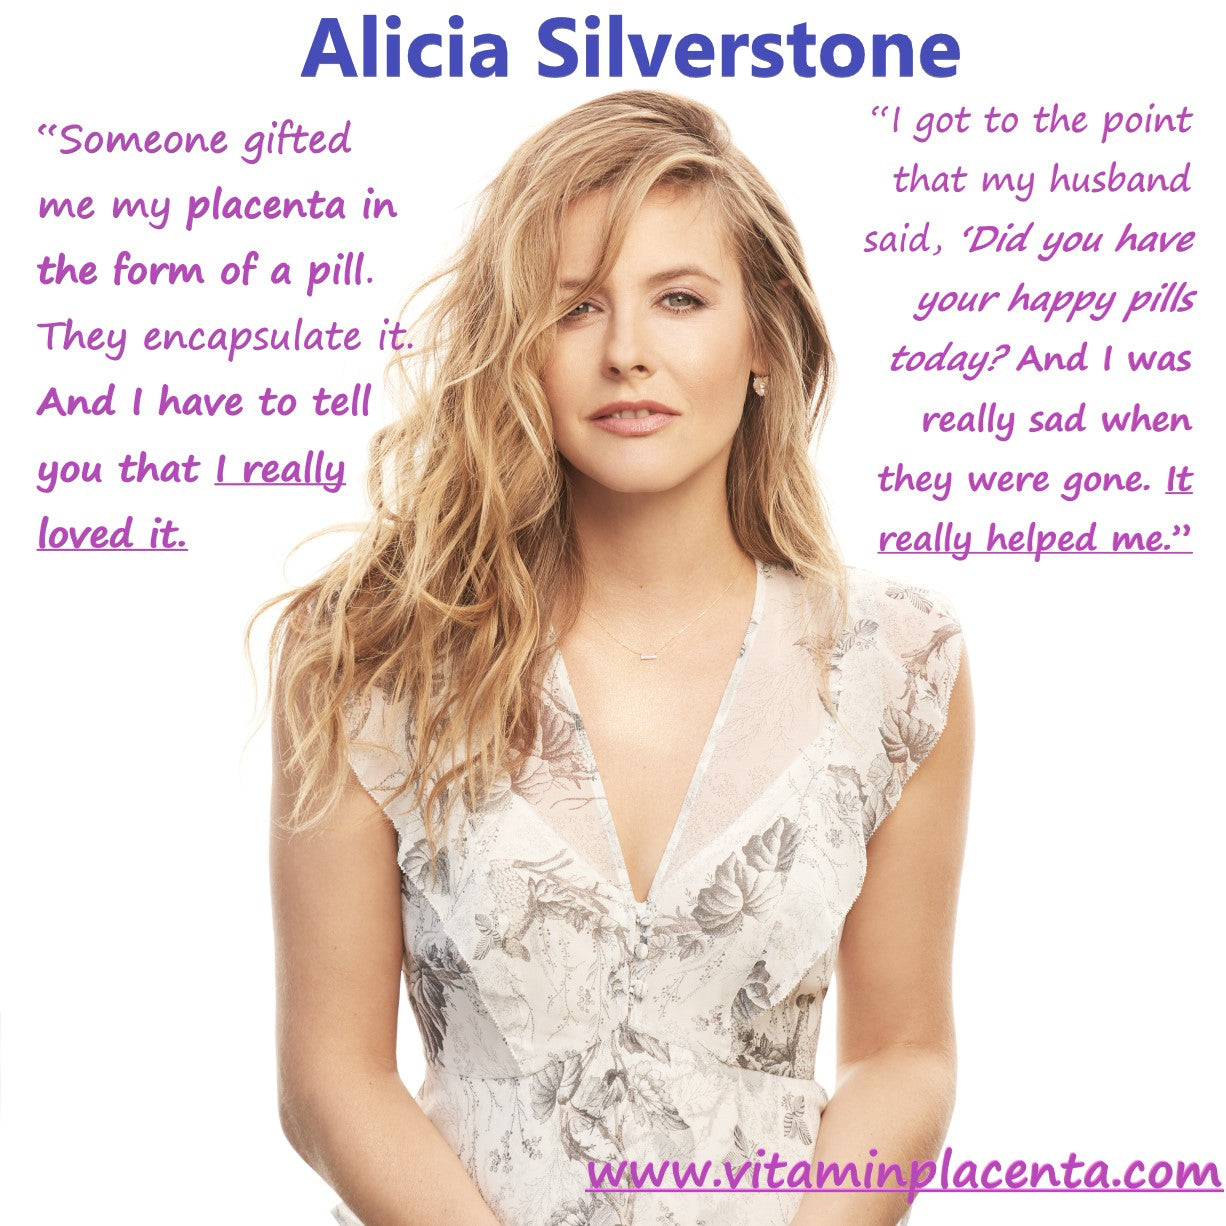 Alicia Silverstone reveals she loved placenta pills and referred to them as her happy pills and was sad when they were gone because they really helped her. VItamin Placenta gives you your own happy pills, so movie star like Alicia Silverstone